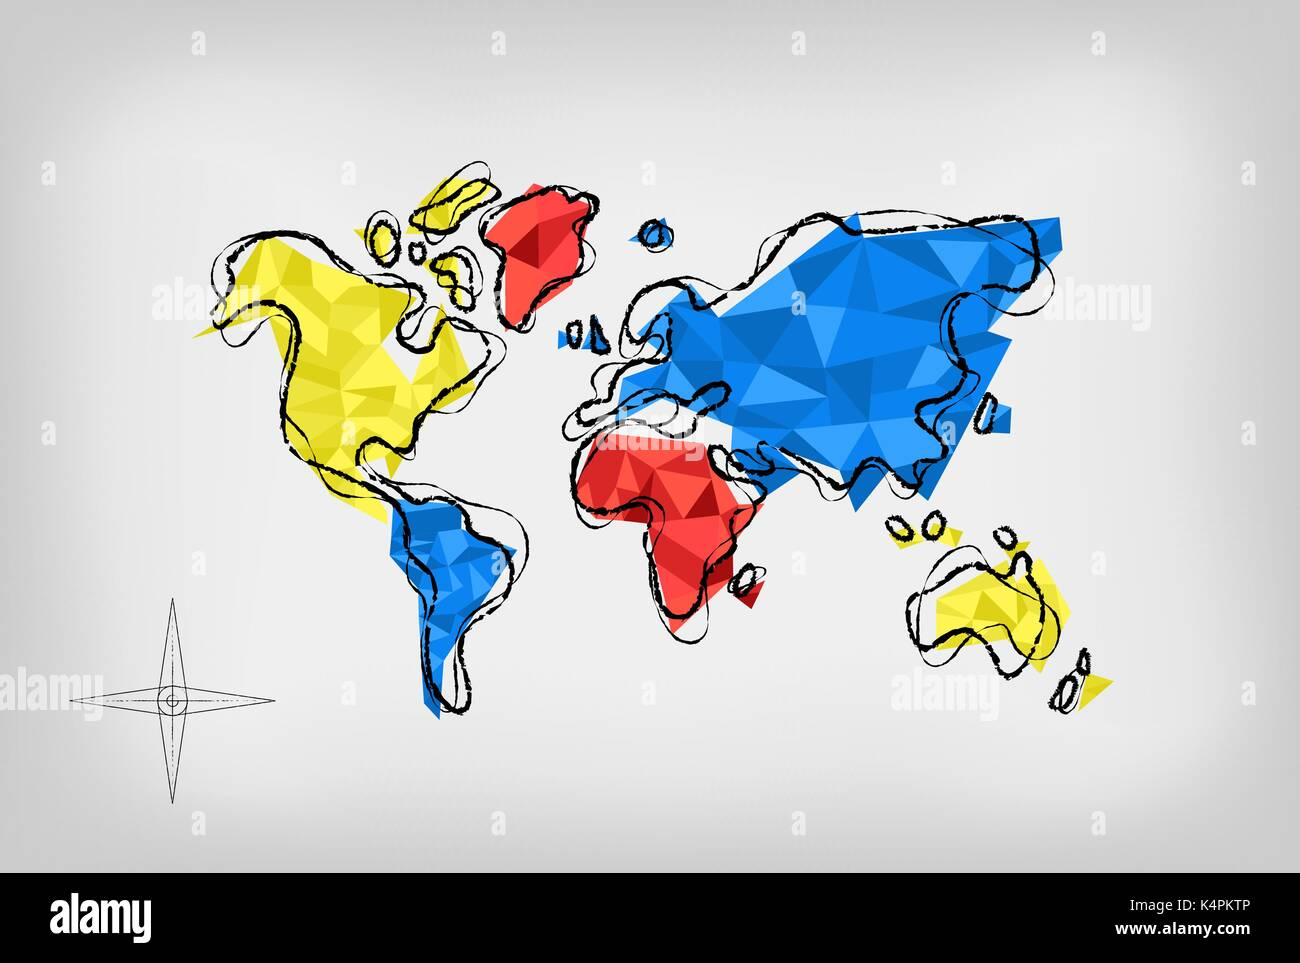 Modern world map illustration template in hand drawn style with modern world map illustration template in hand drawn style with colorful abstract low poly geometric shapes eps10 vector gumiabroncs Images